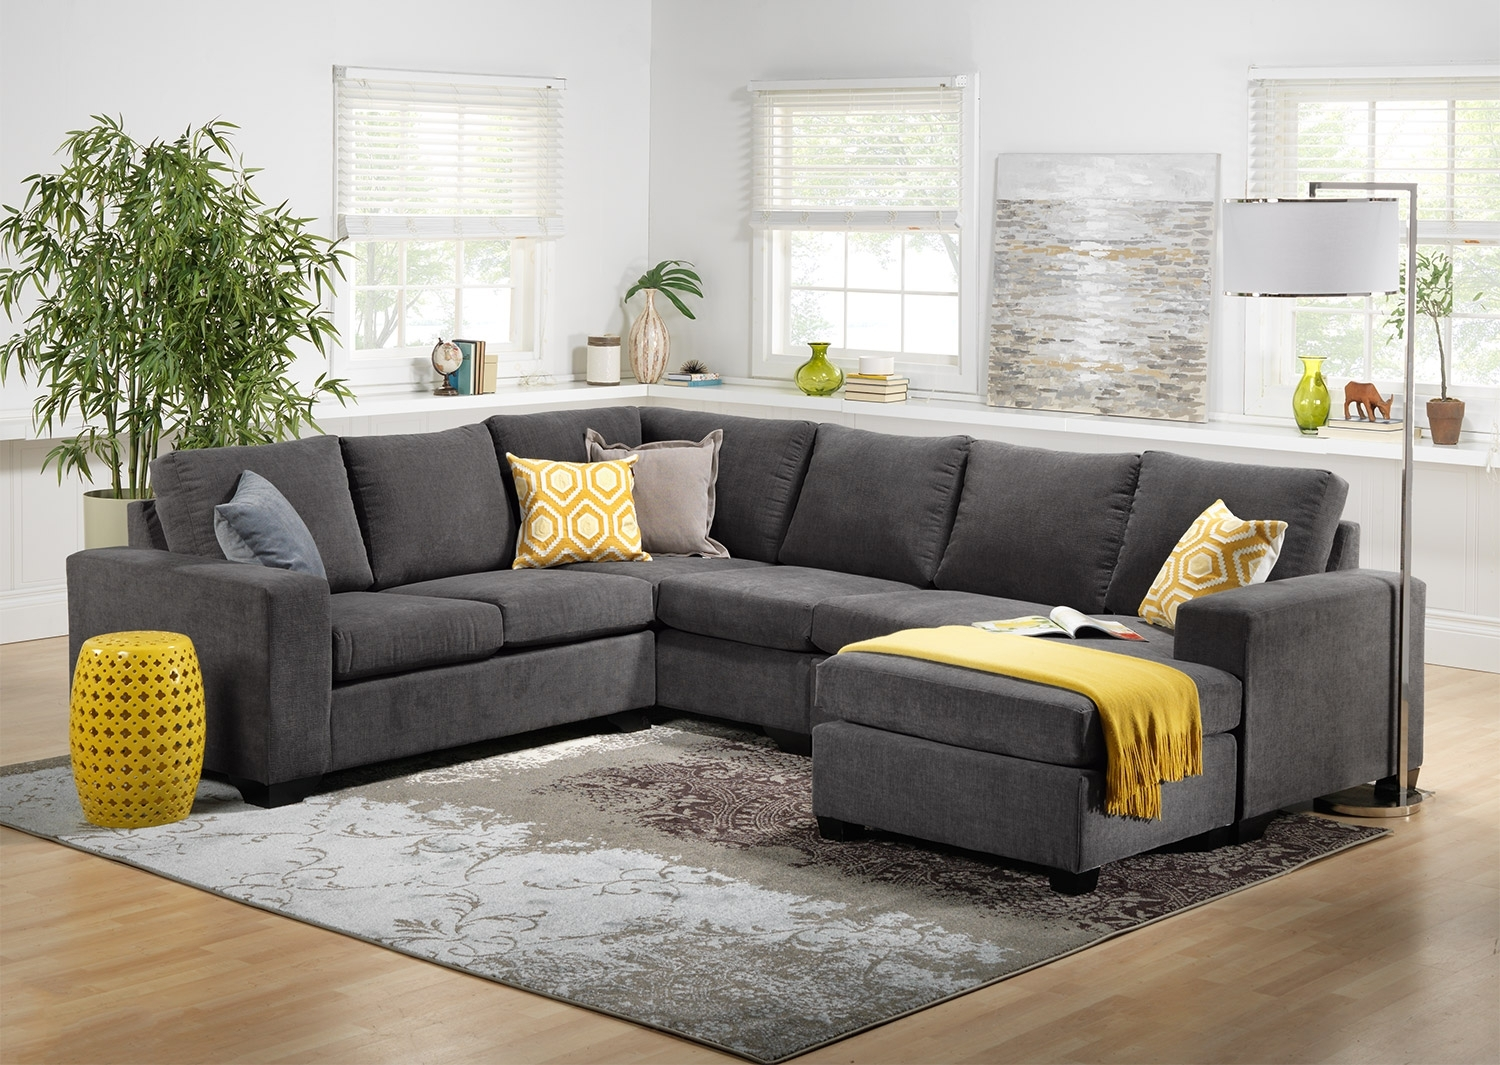 Used Sectional Sofas For Sale Edmonton Best Home Furniture Ideas For Ontario Canada Sectional Sofas (View 3 of 10)